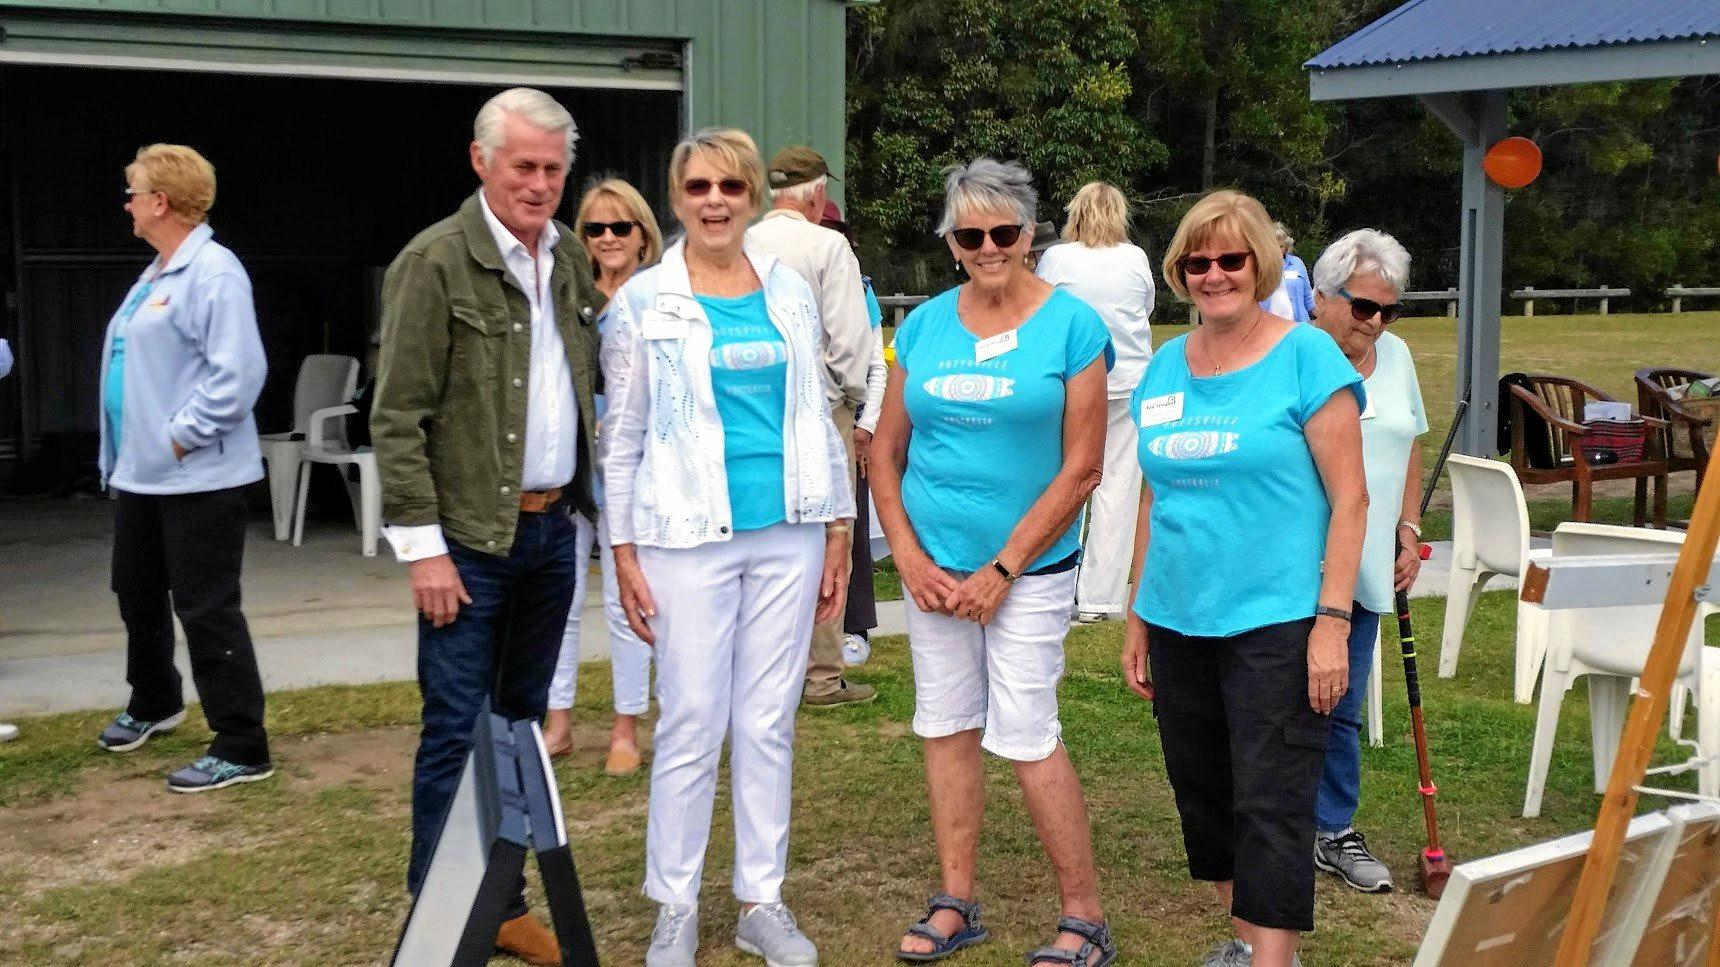 TIME TO CELEBRATE: Geoff Provest, NSW Member for Tweed; Carol Vimpani, President Pottsville Fun Croquet; Pat Curtis and Edwina Ryan, Secretary; celebrate the completion of the the club's shelter with a morning tea.